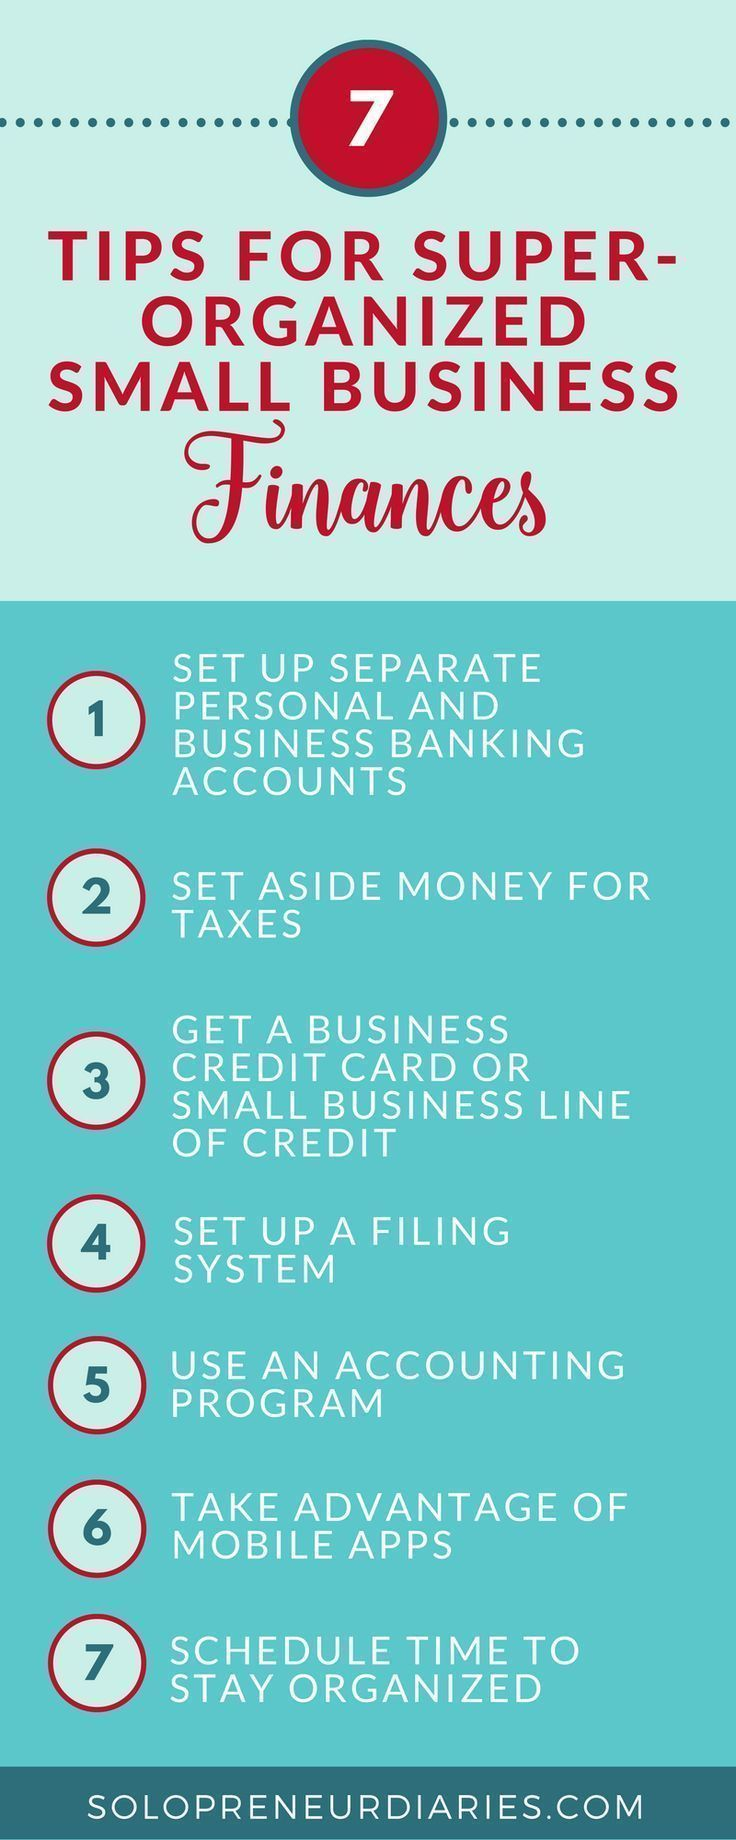 Small Business Tips As A Small Business Owner There Is Always Something That Needs To Be Small Business Finance Business Finance Small Business Organization